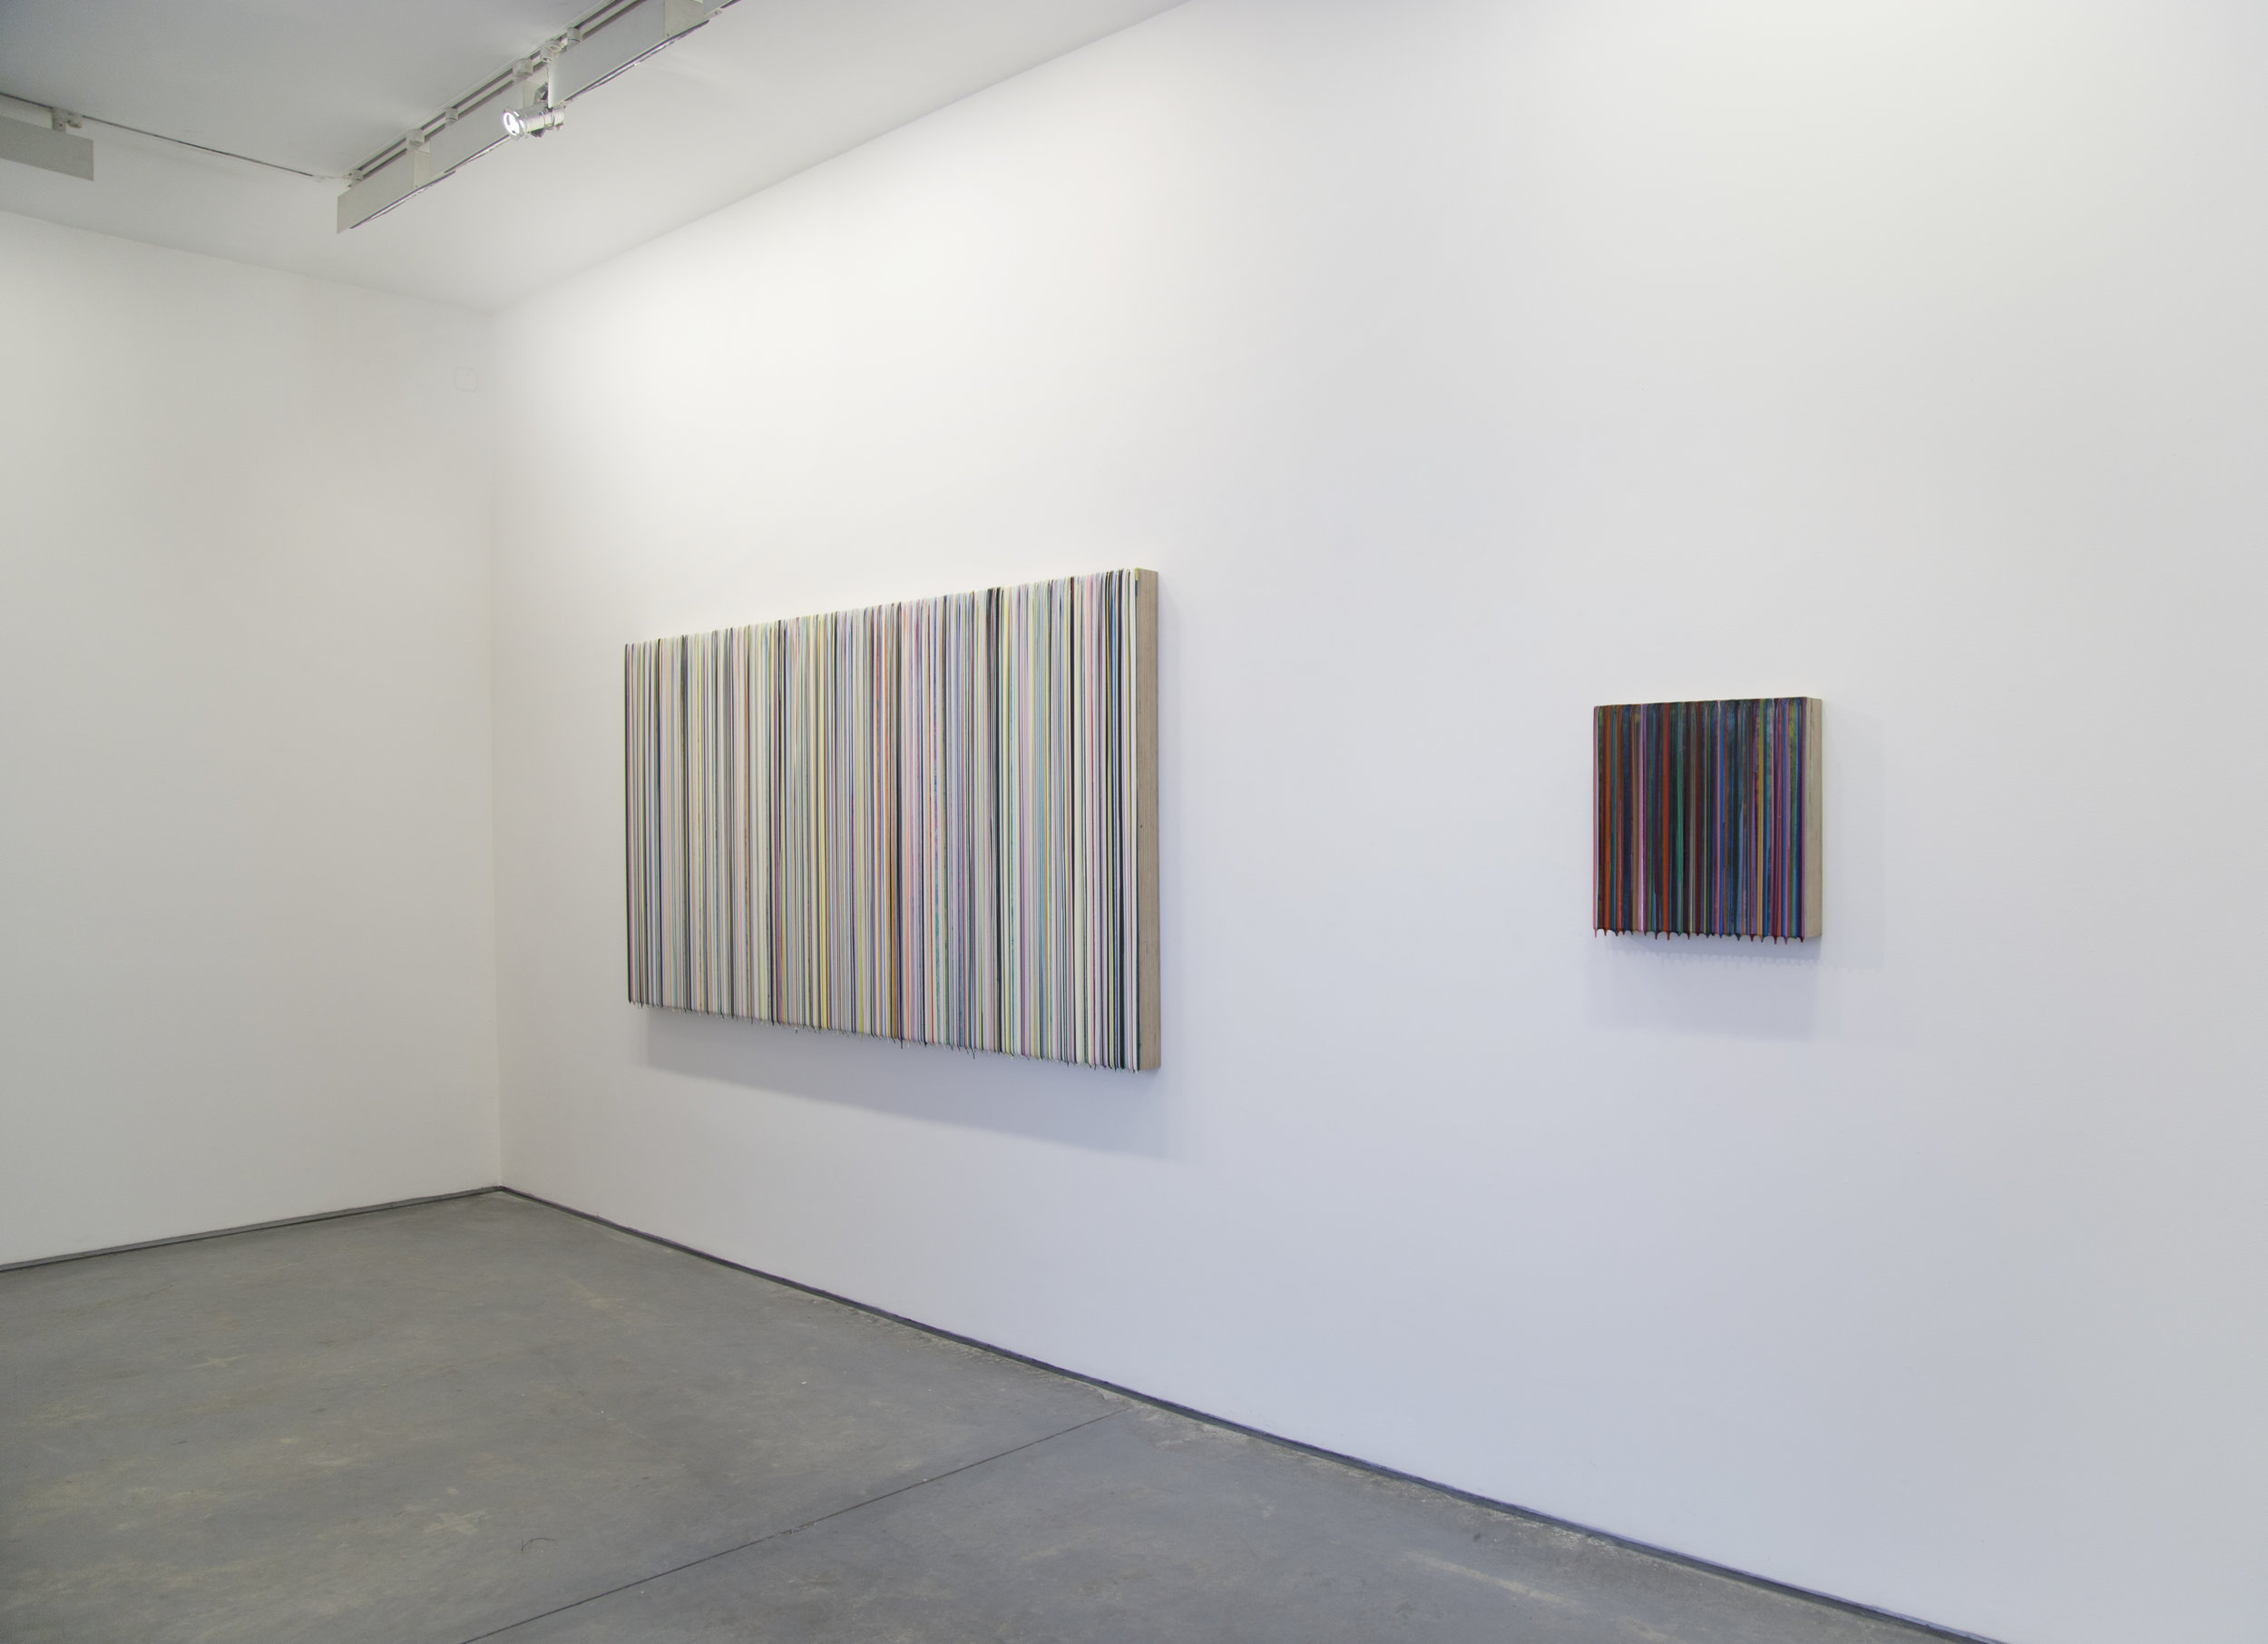 WHOLEWIDEWORLDWONDERFUL, 2019  (installation view)